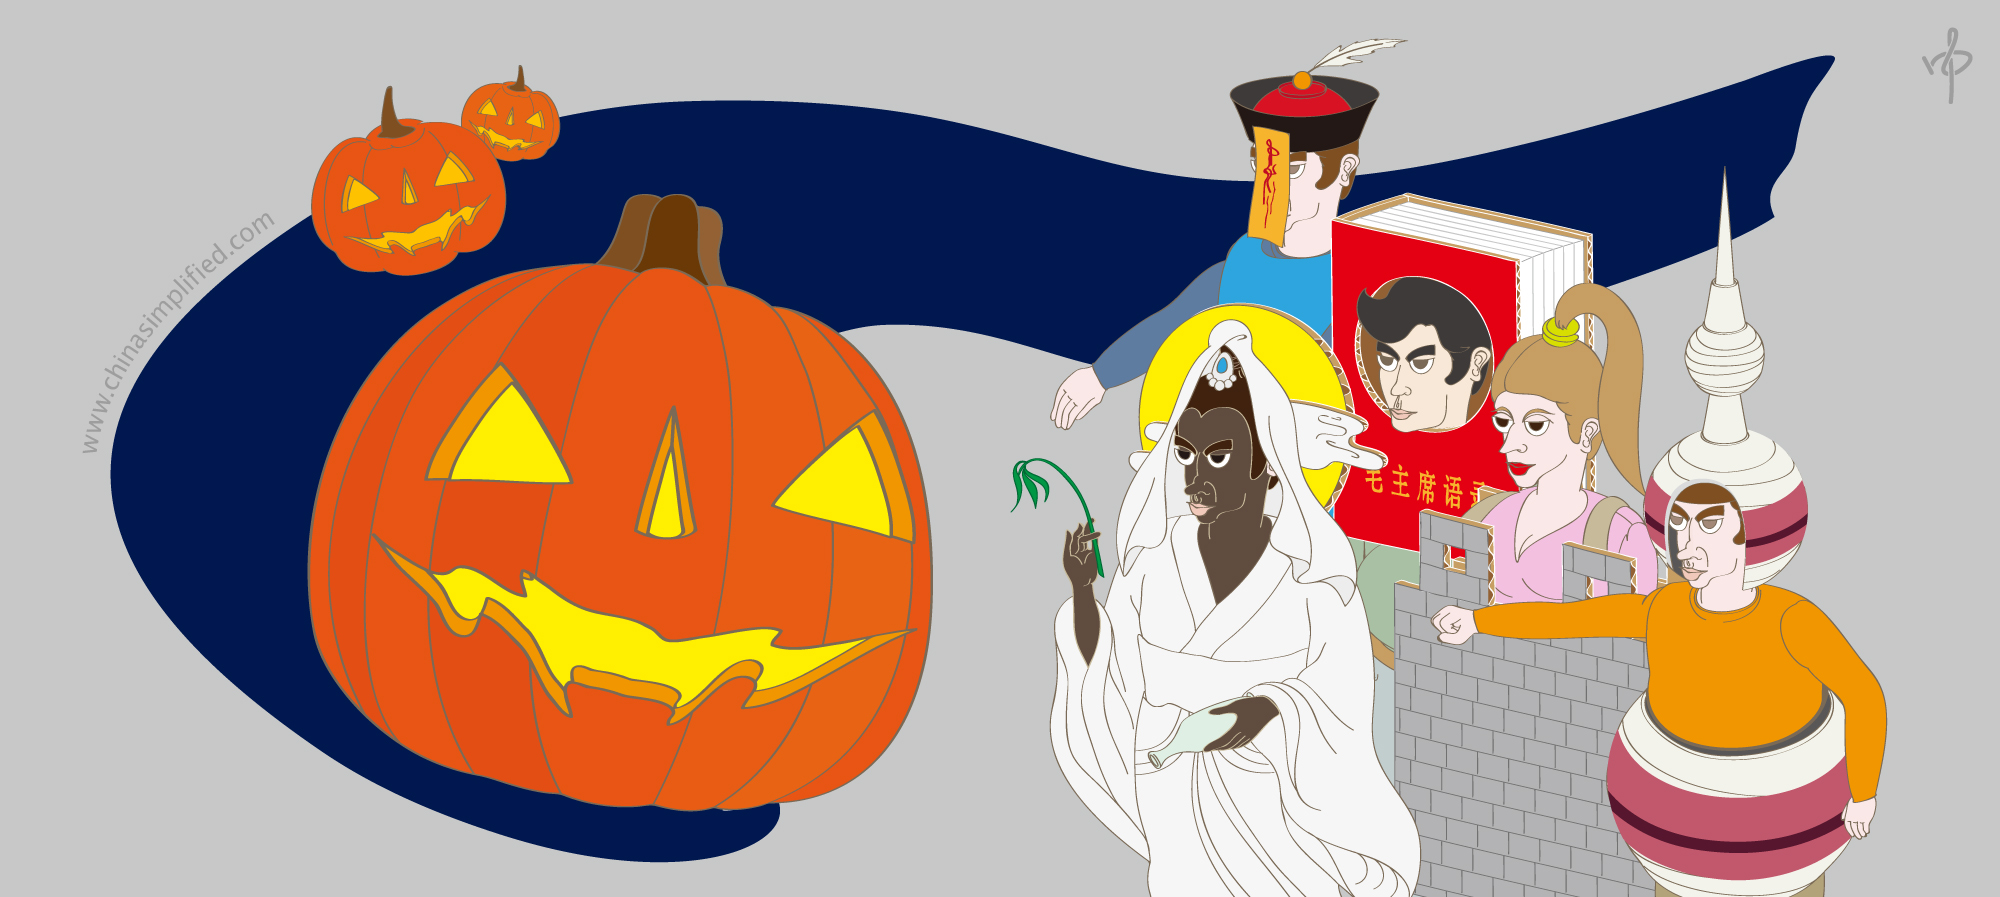 China-themed Halloween Costumes